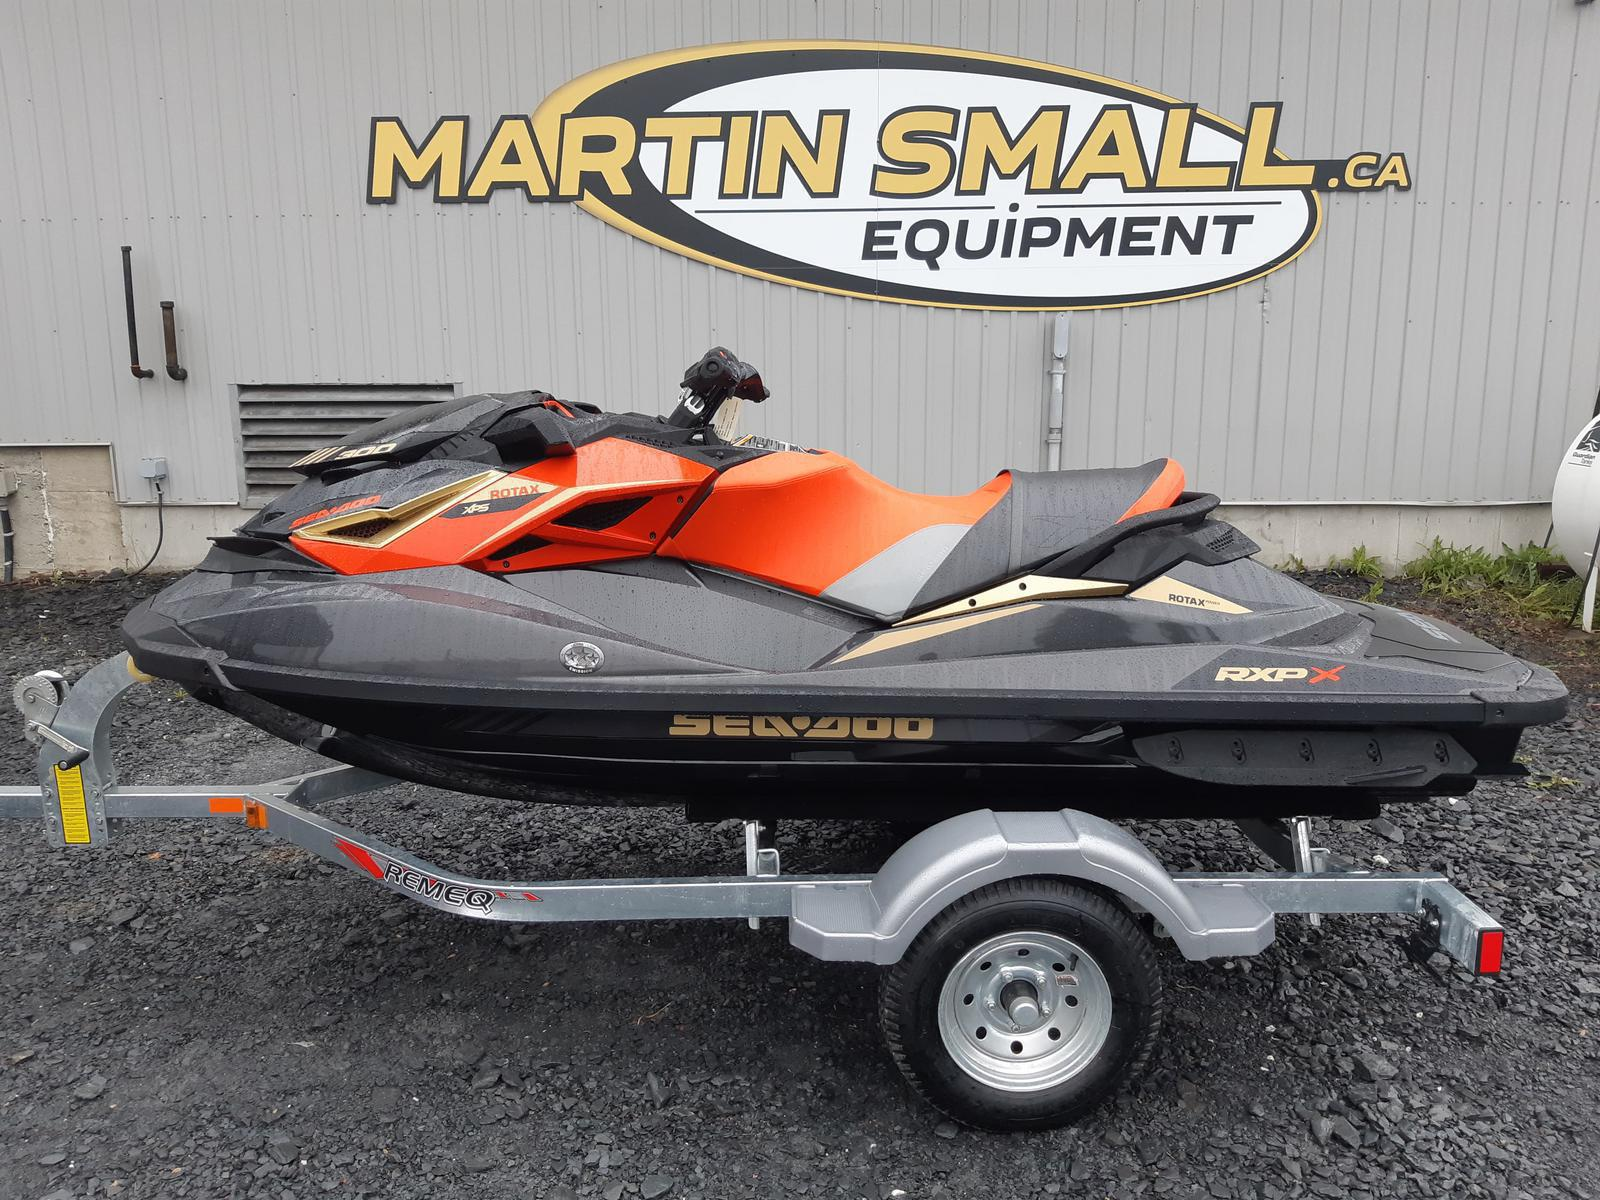 PWC from Sea-Doo Martin Small Equipment Edmundston, NB (506